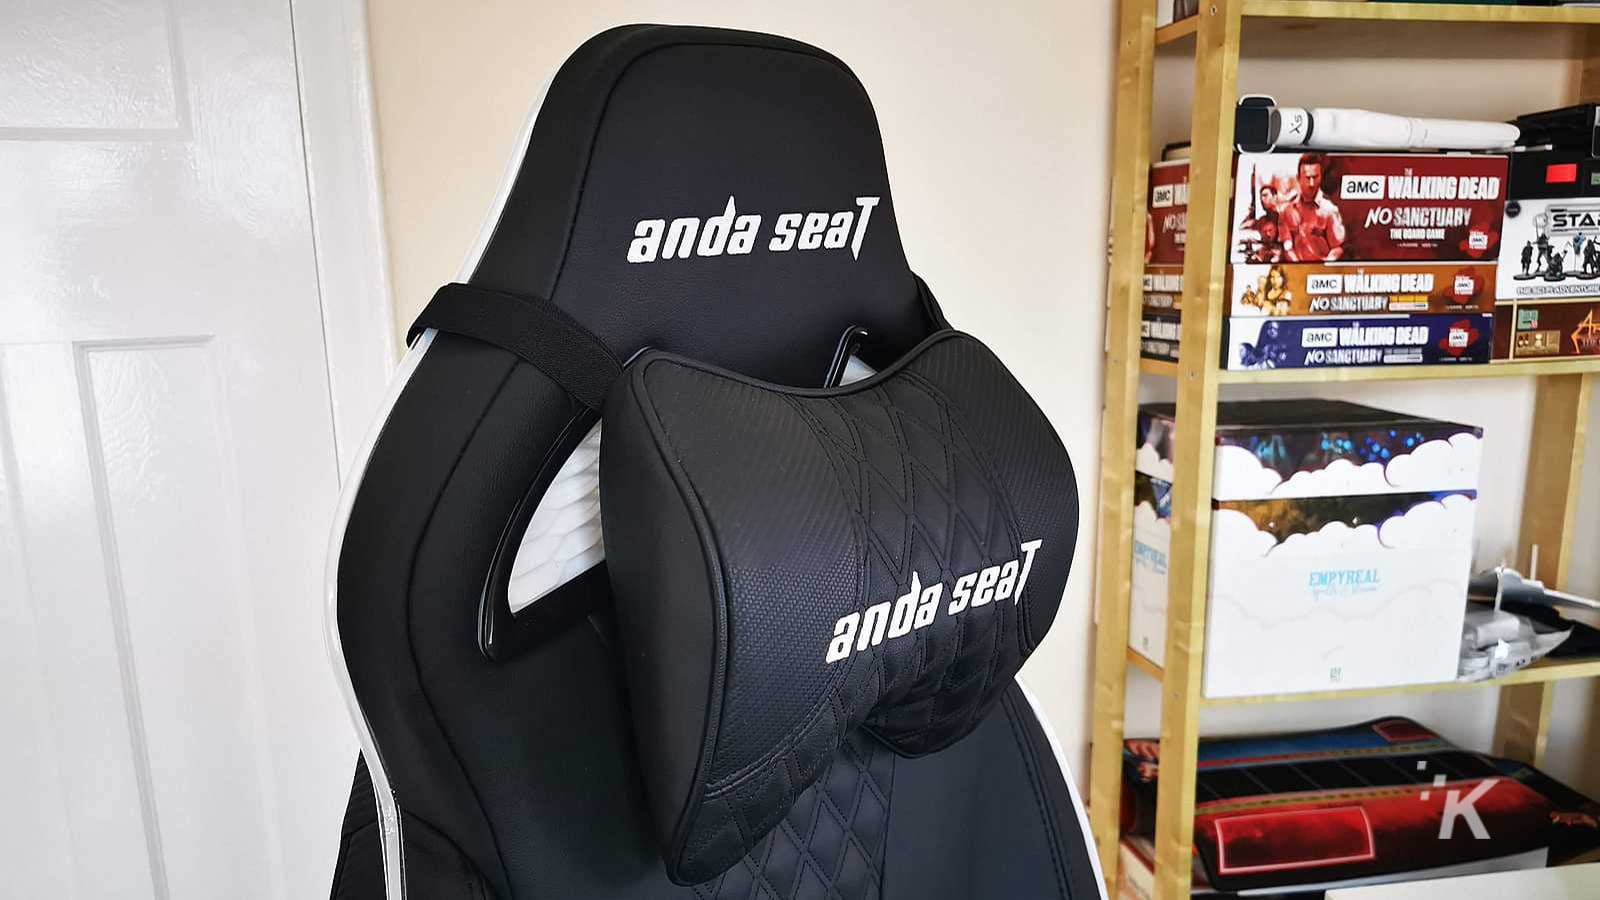 Andaseat Throne neck rest cushion